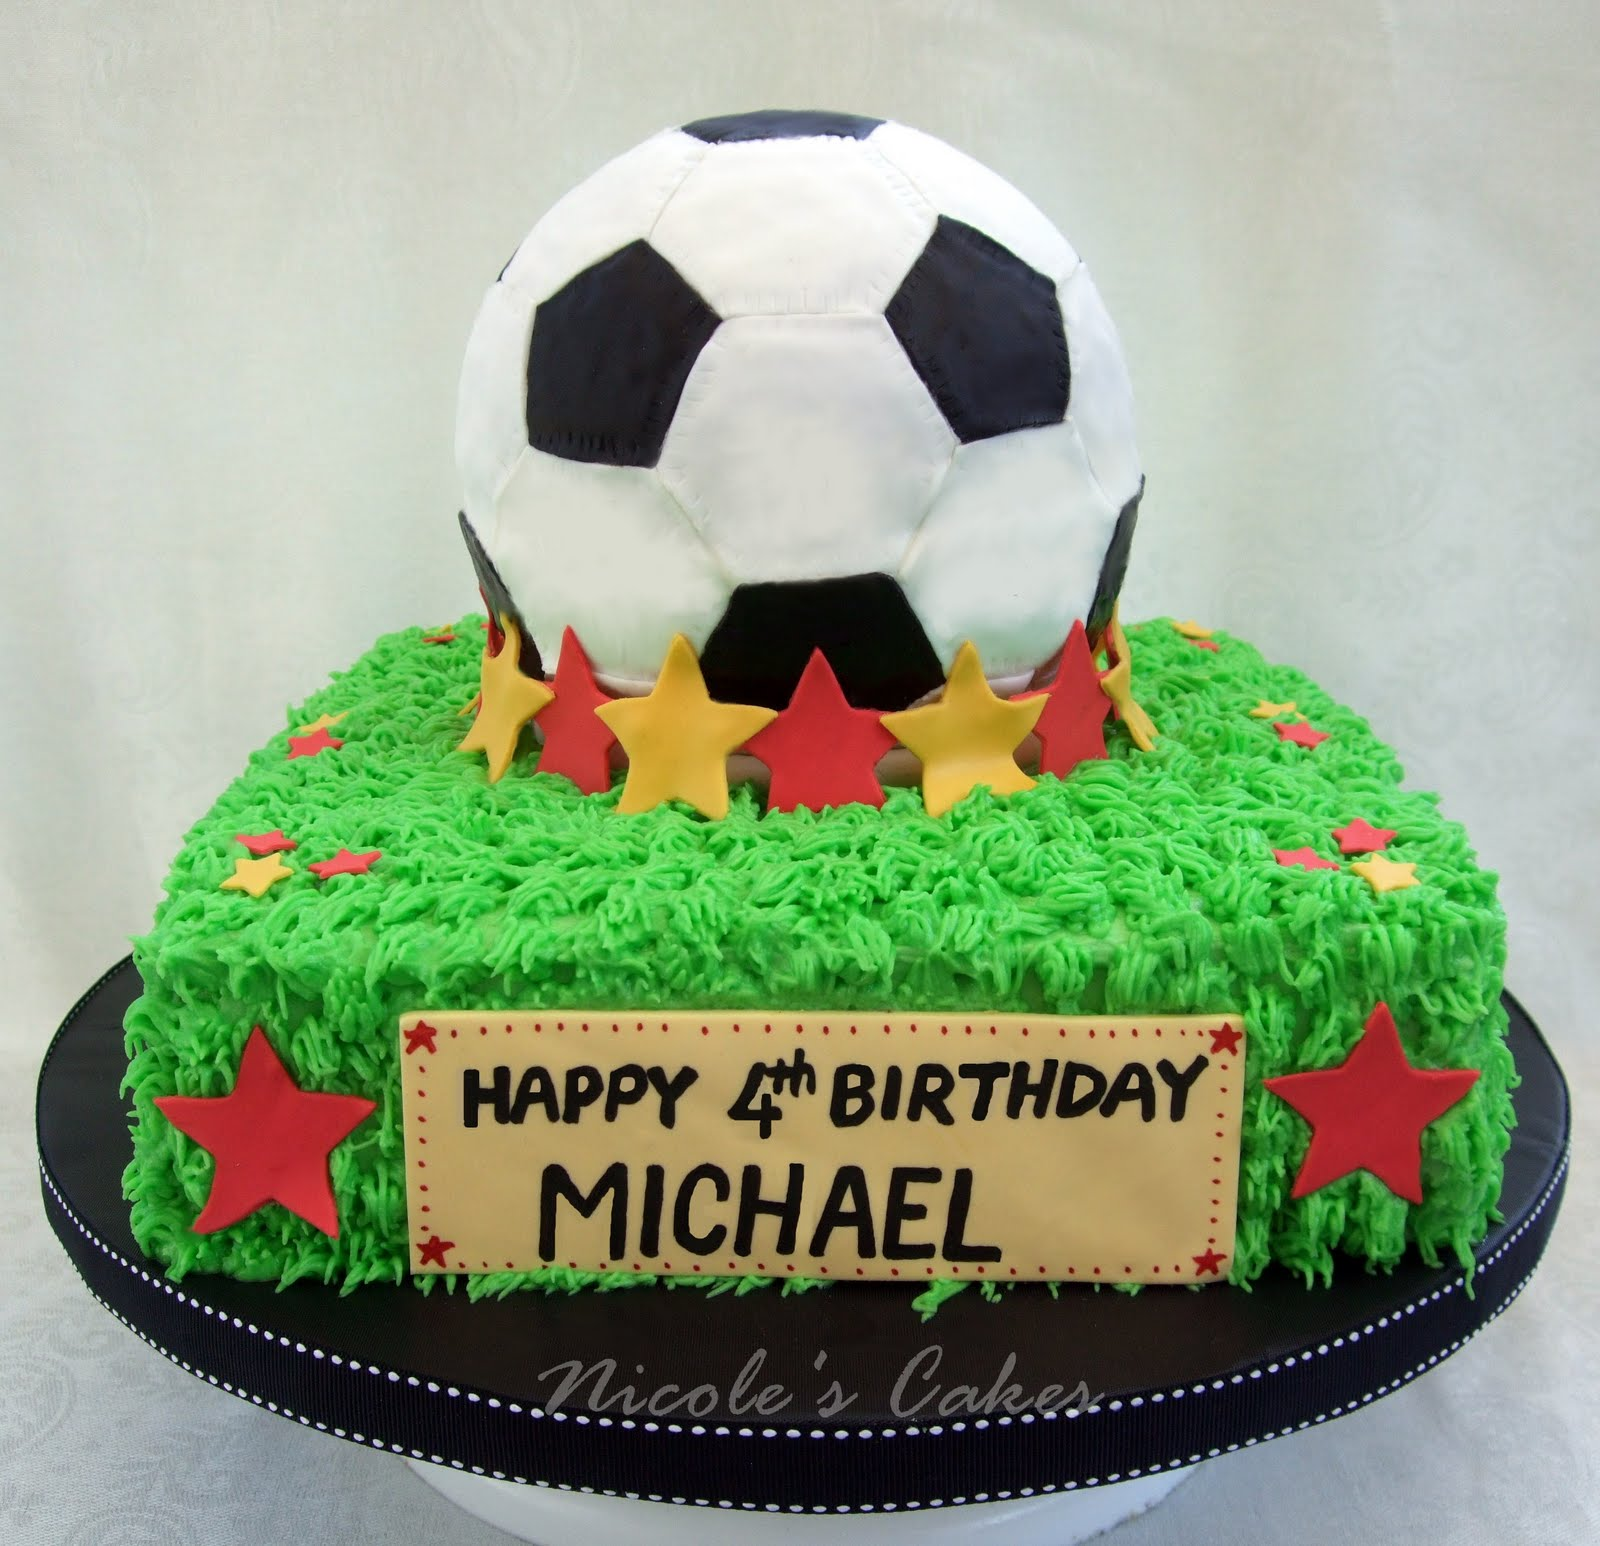 Cake With Ball Design : Confections, Cakes & Creations!: Soccer Ball Cake